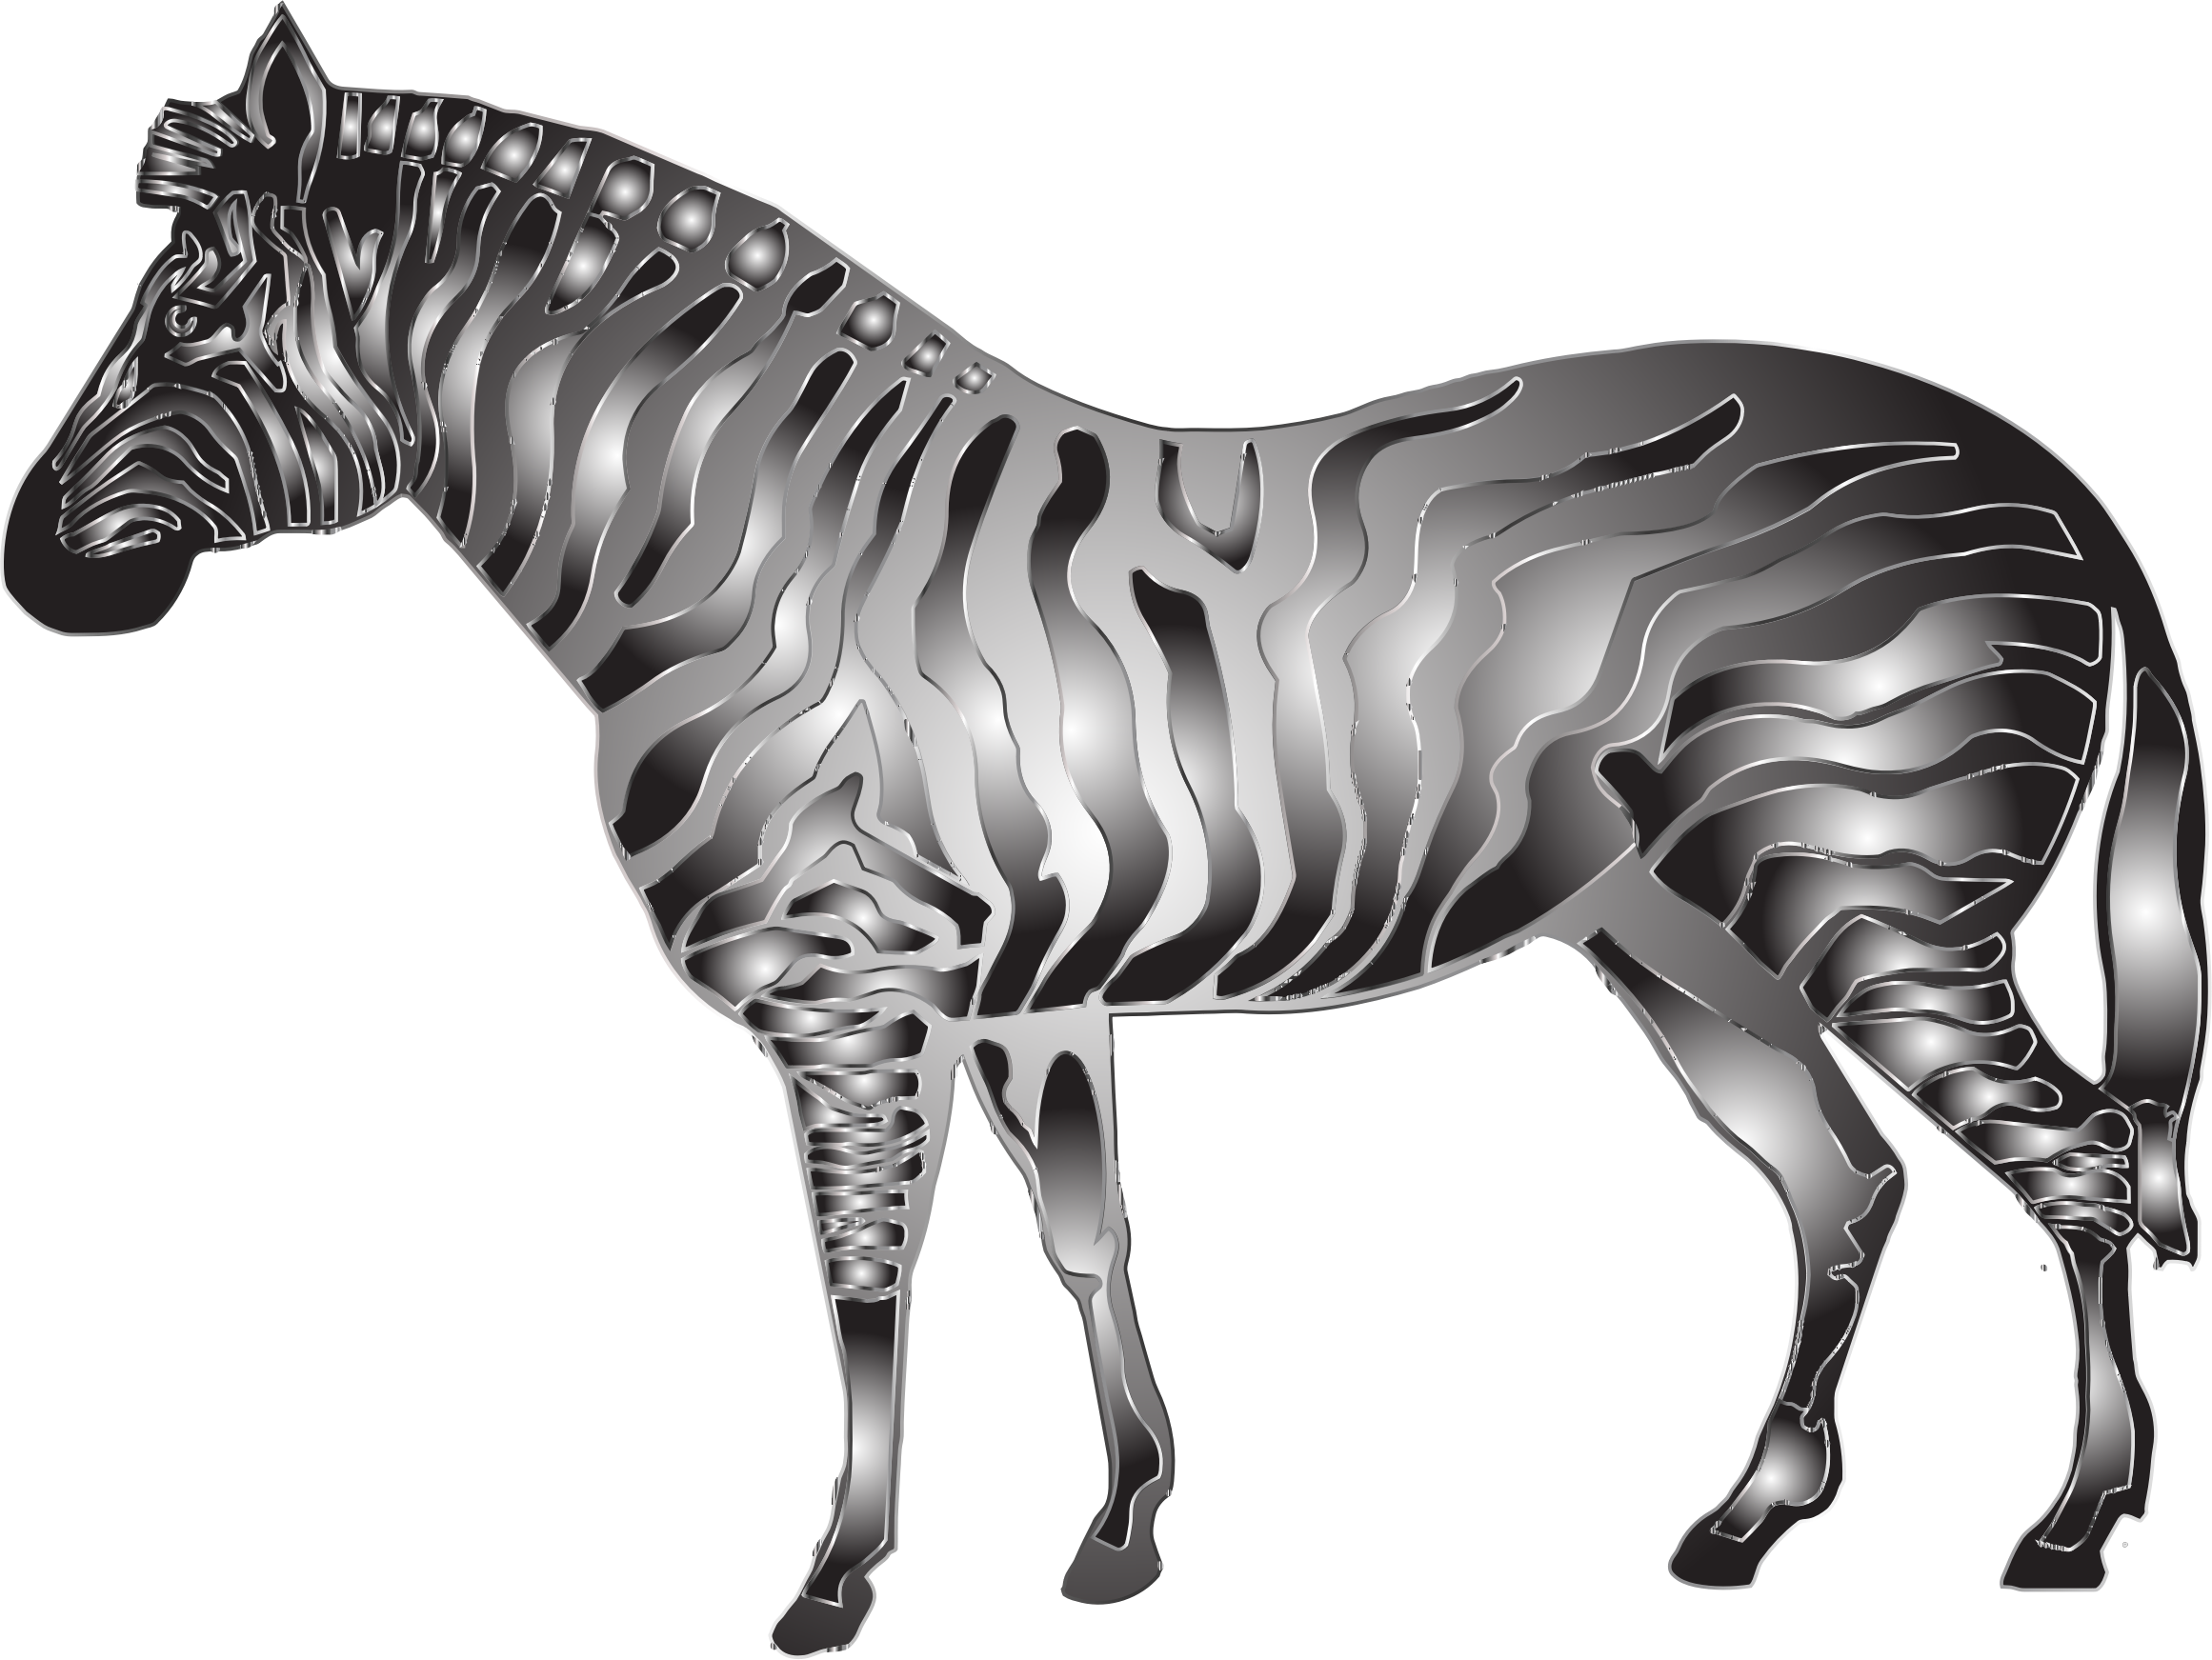 Metallic Zebra 2 by GDJ